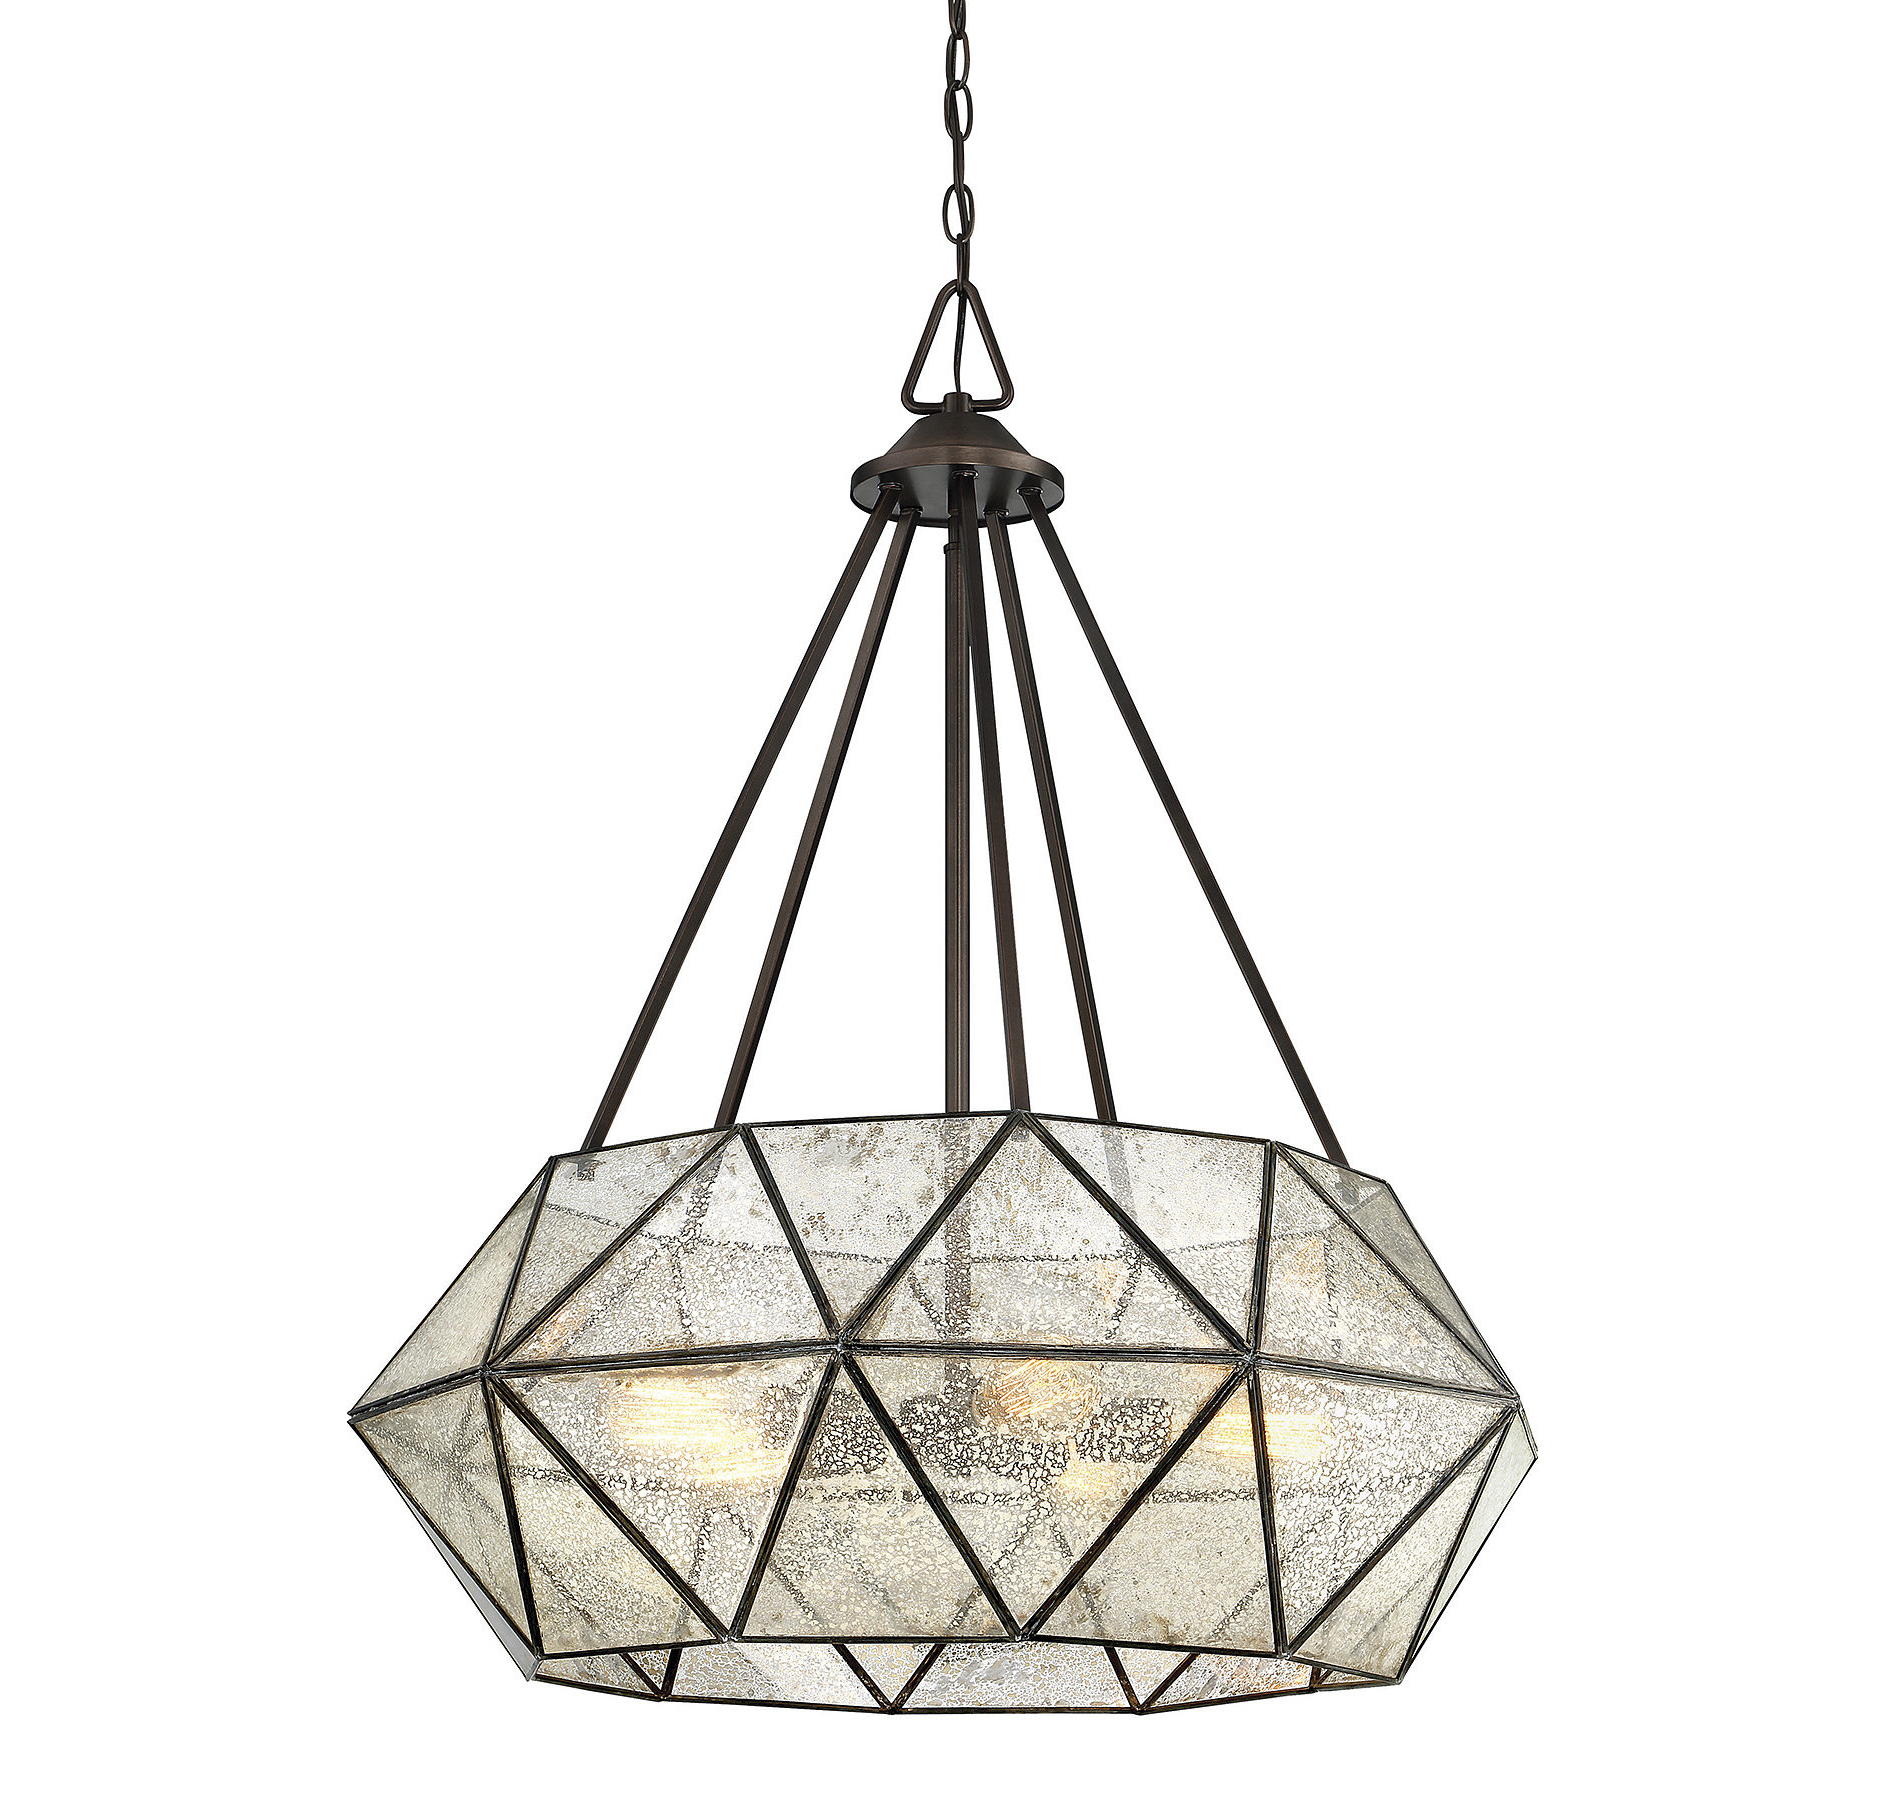 Preferred Jacey 5 Light Chandelier With Regard To Ladonna 5 Light Novelty Chandeliers (View 11 of 20)